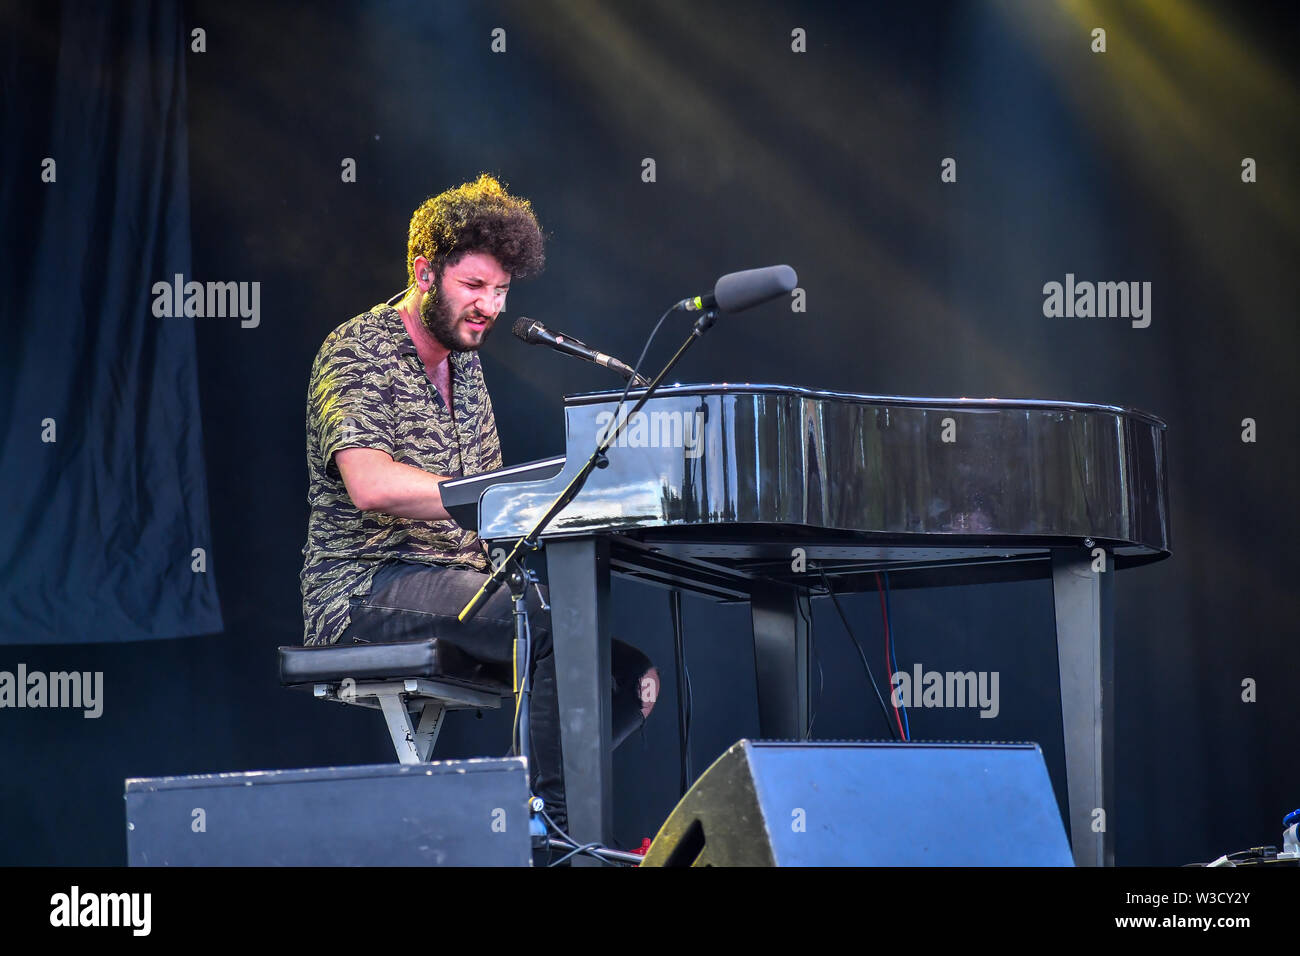 London, UK. 14th July 2019. Billy Lockett performs at Kew the Music 2019 on 14 July 2019, London, UK. Credit: Picture Capital/Alamy Live News - Stock Image